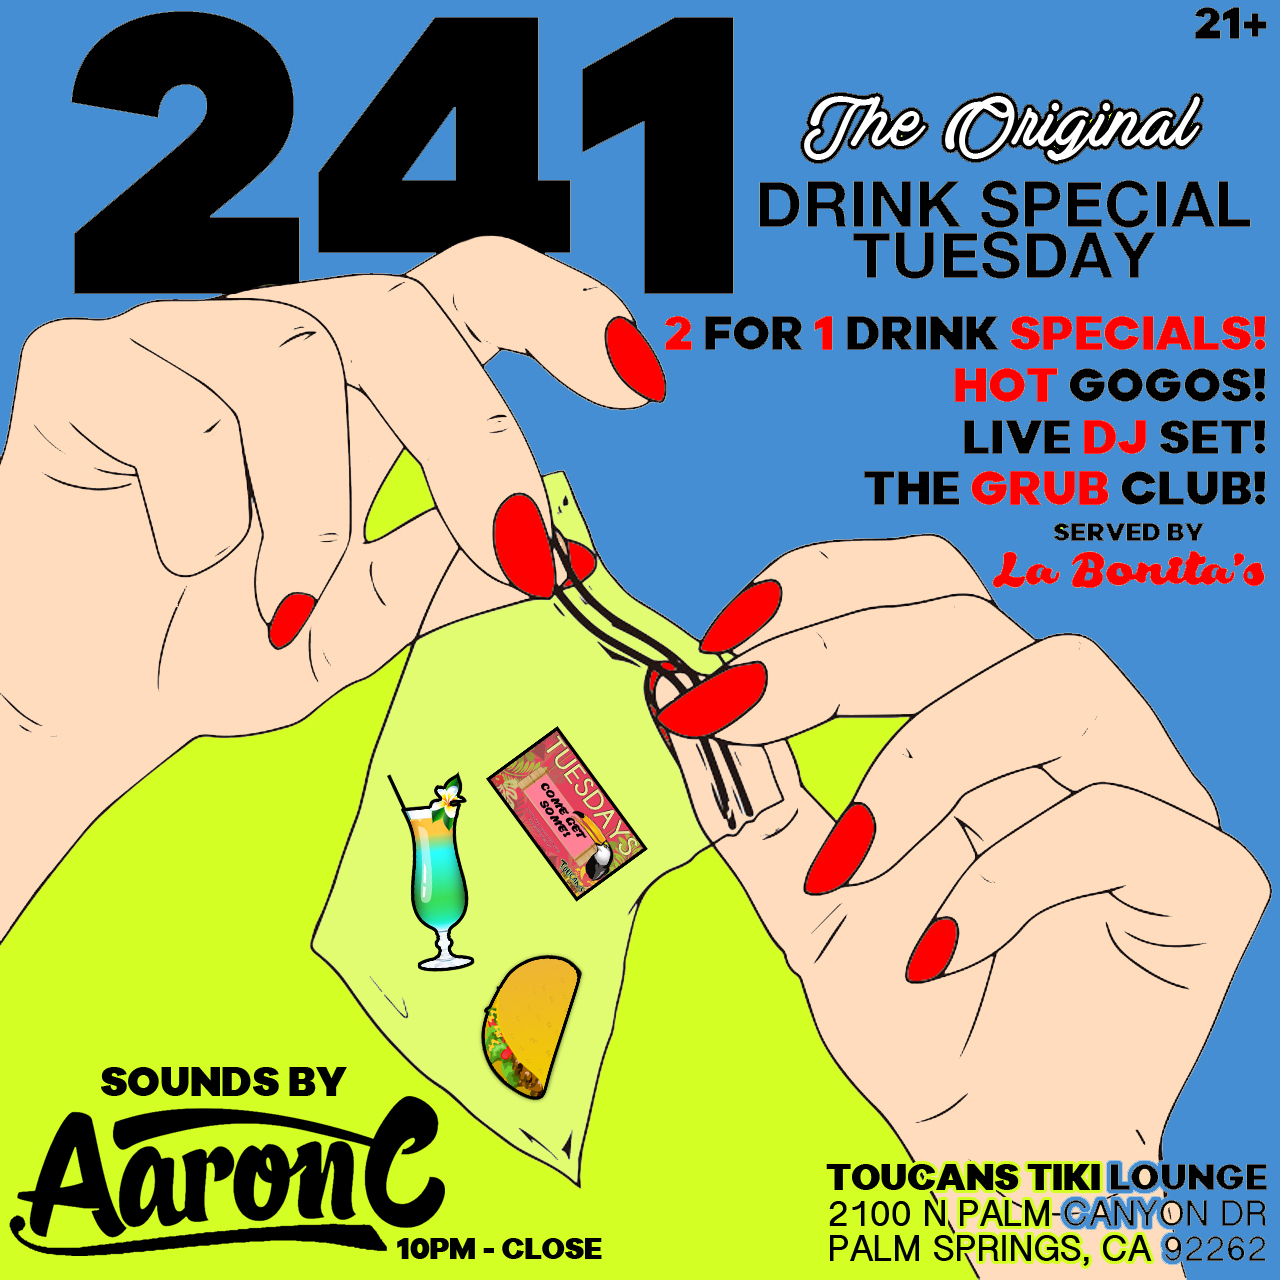 241 inside Toucan's Tiki Lounge with Aaron C